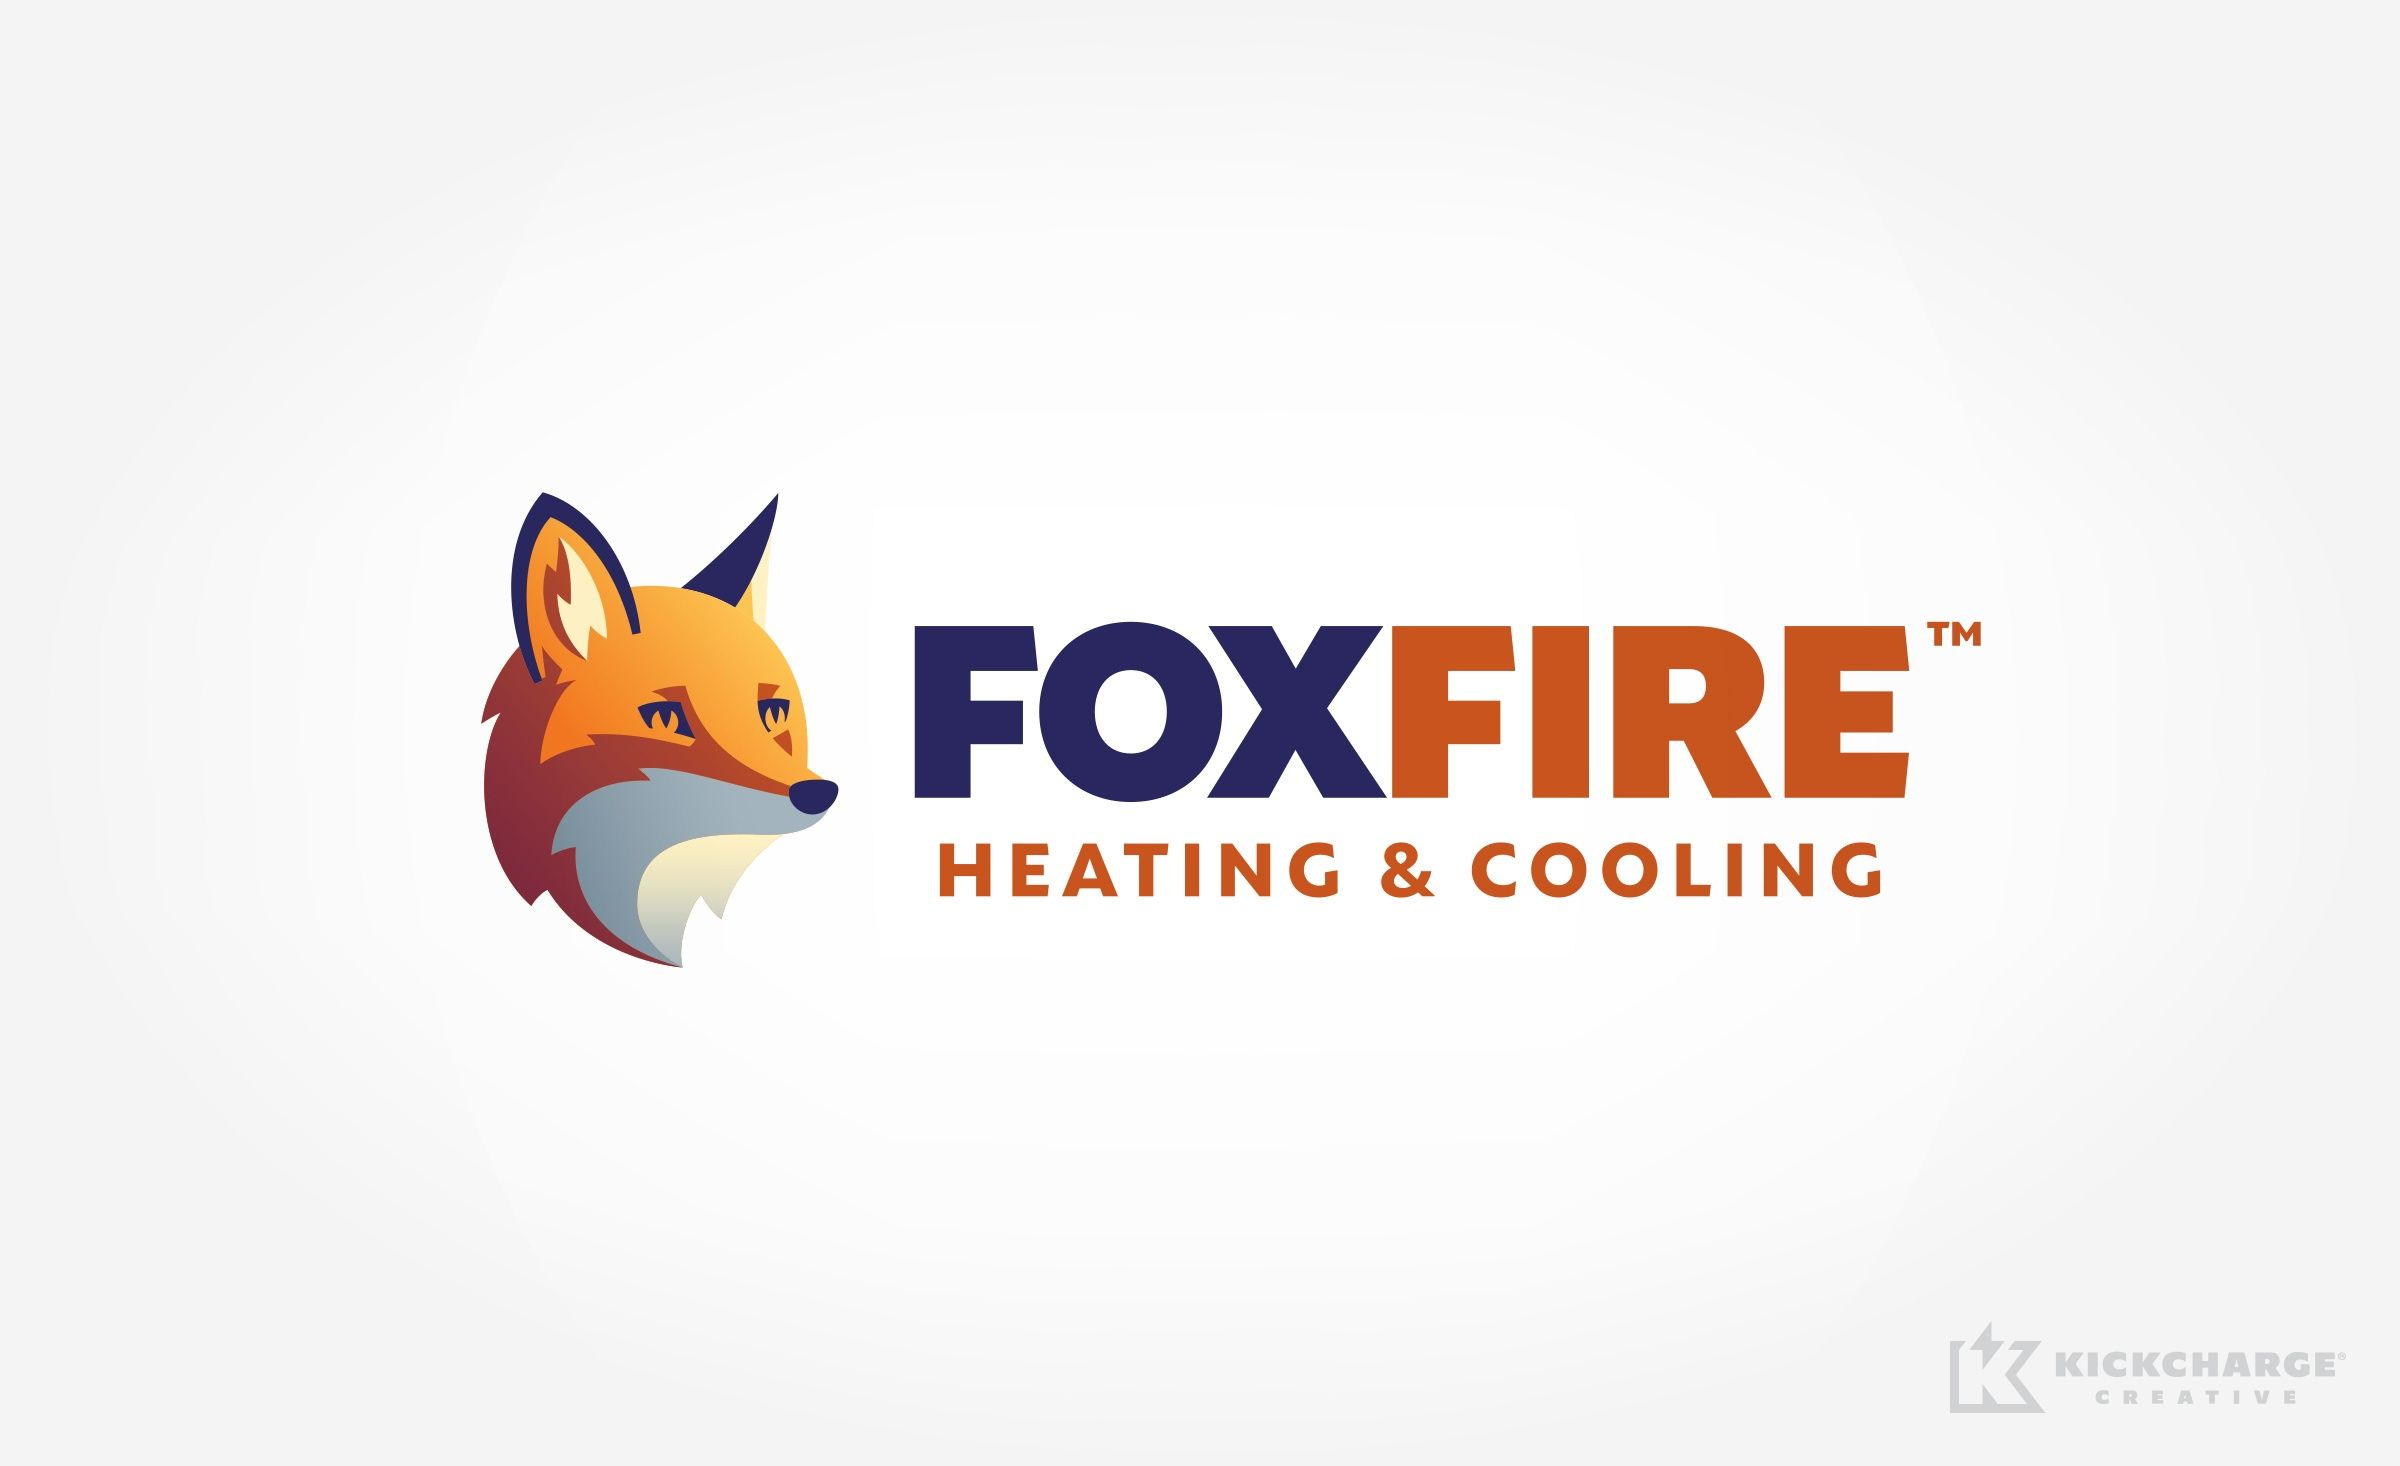 Foxfire Heating Cooling Kickcharge Creative Portfolio Logo